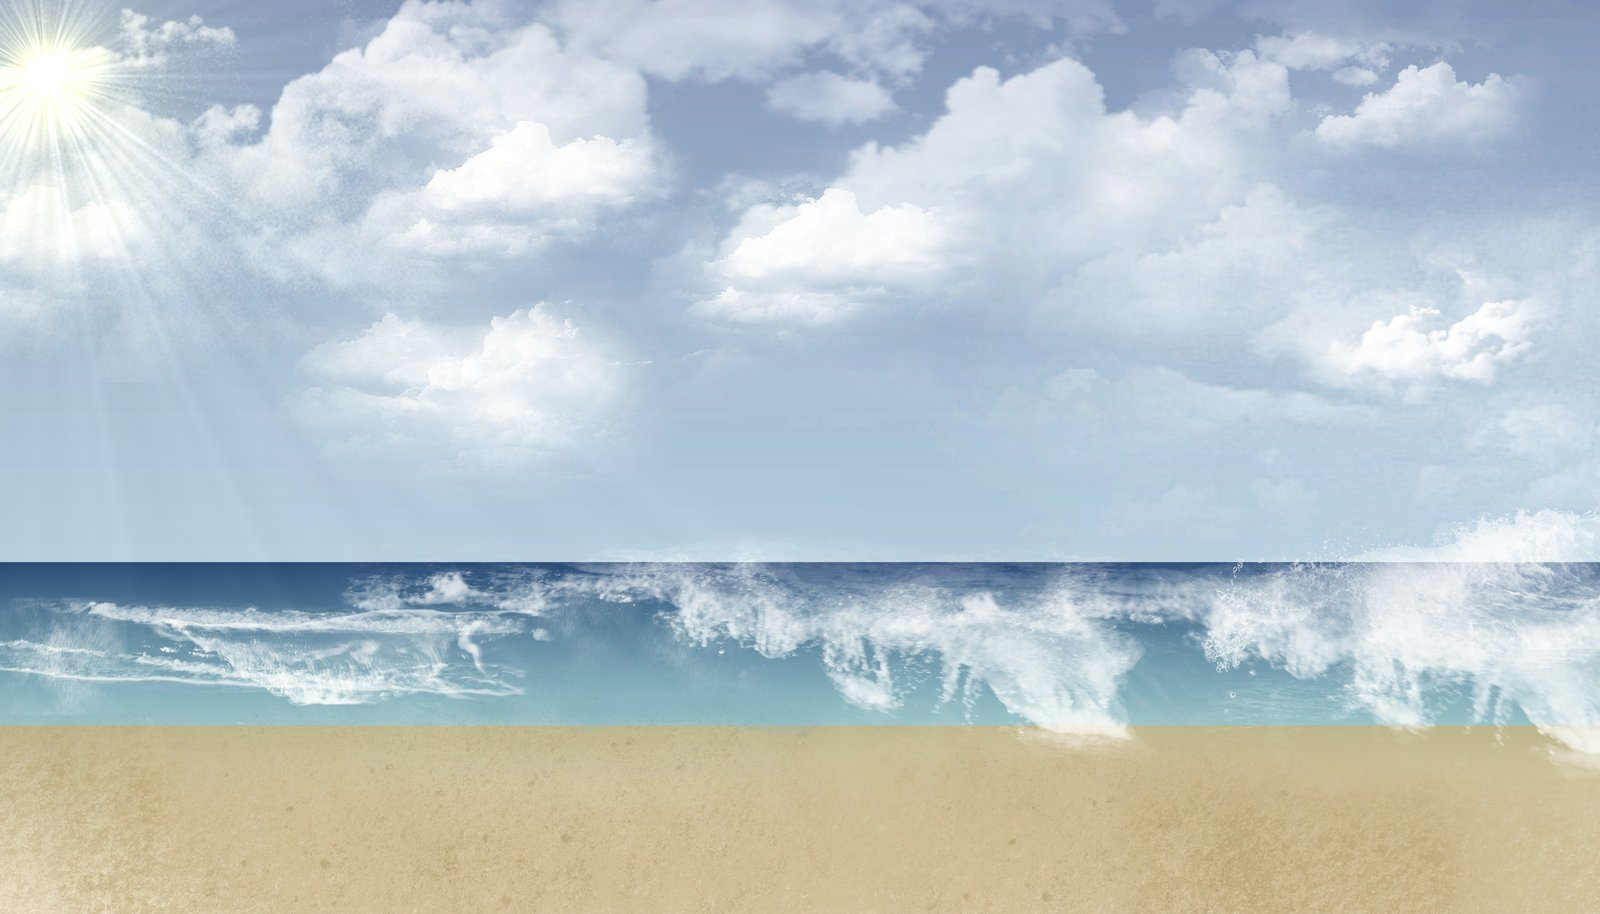 Background Summer Beach by ECVcm on deviantART 1600x914